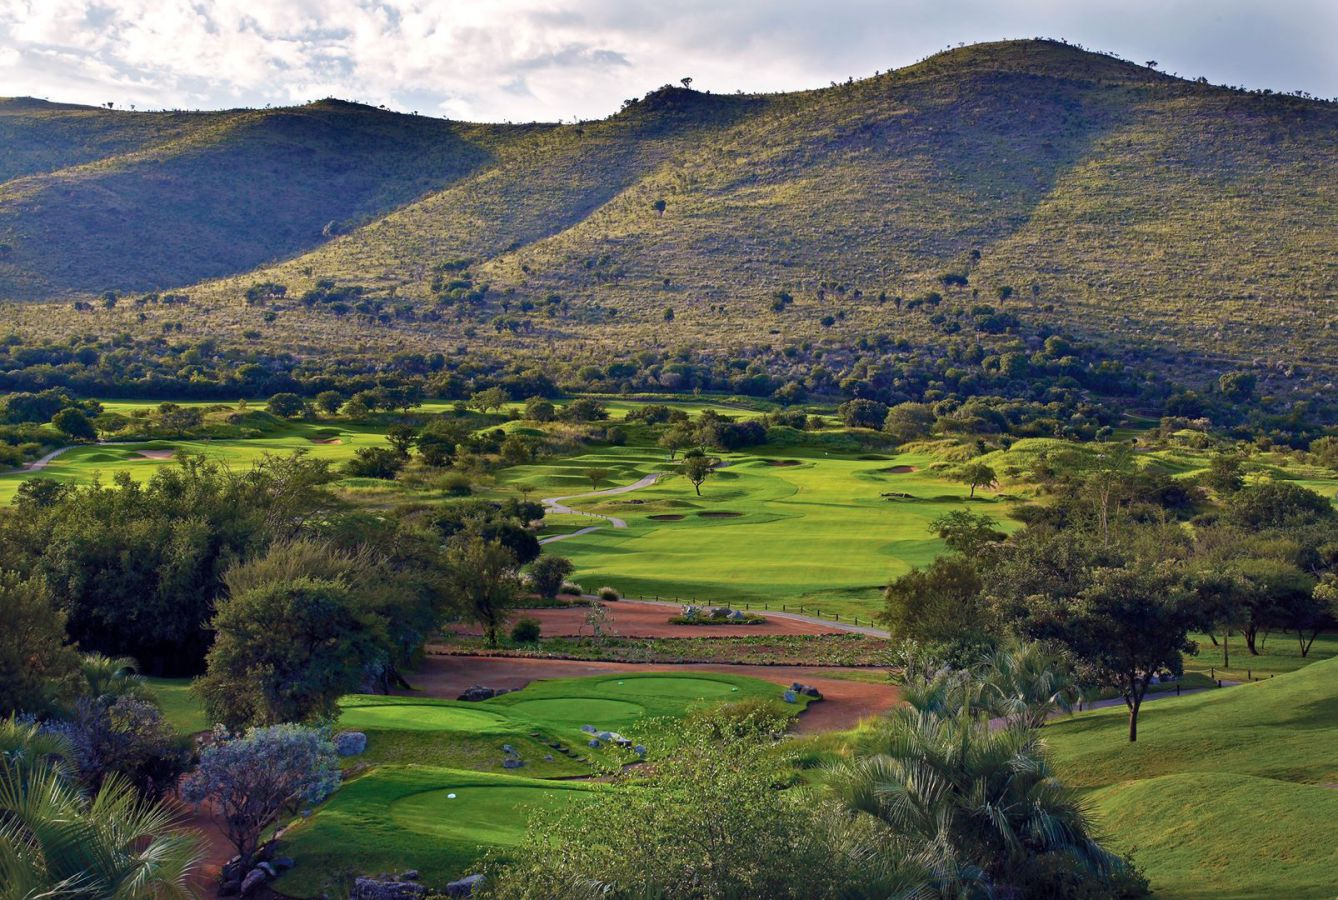 lost-city-golf-course-02